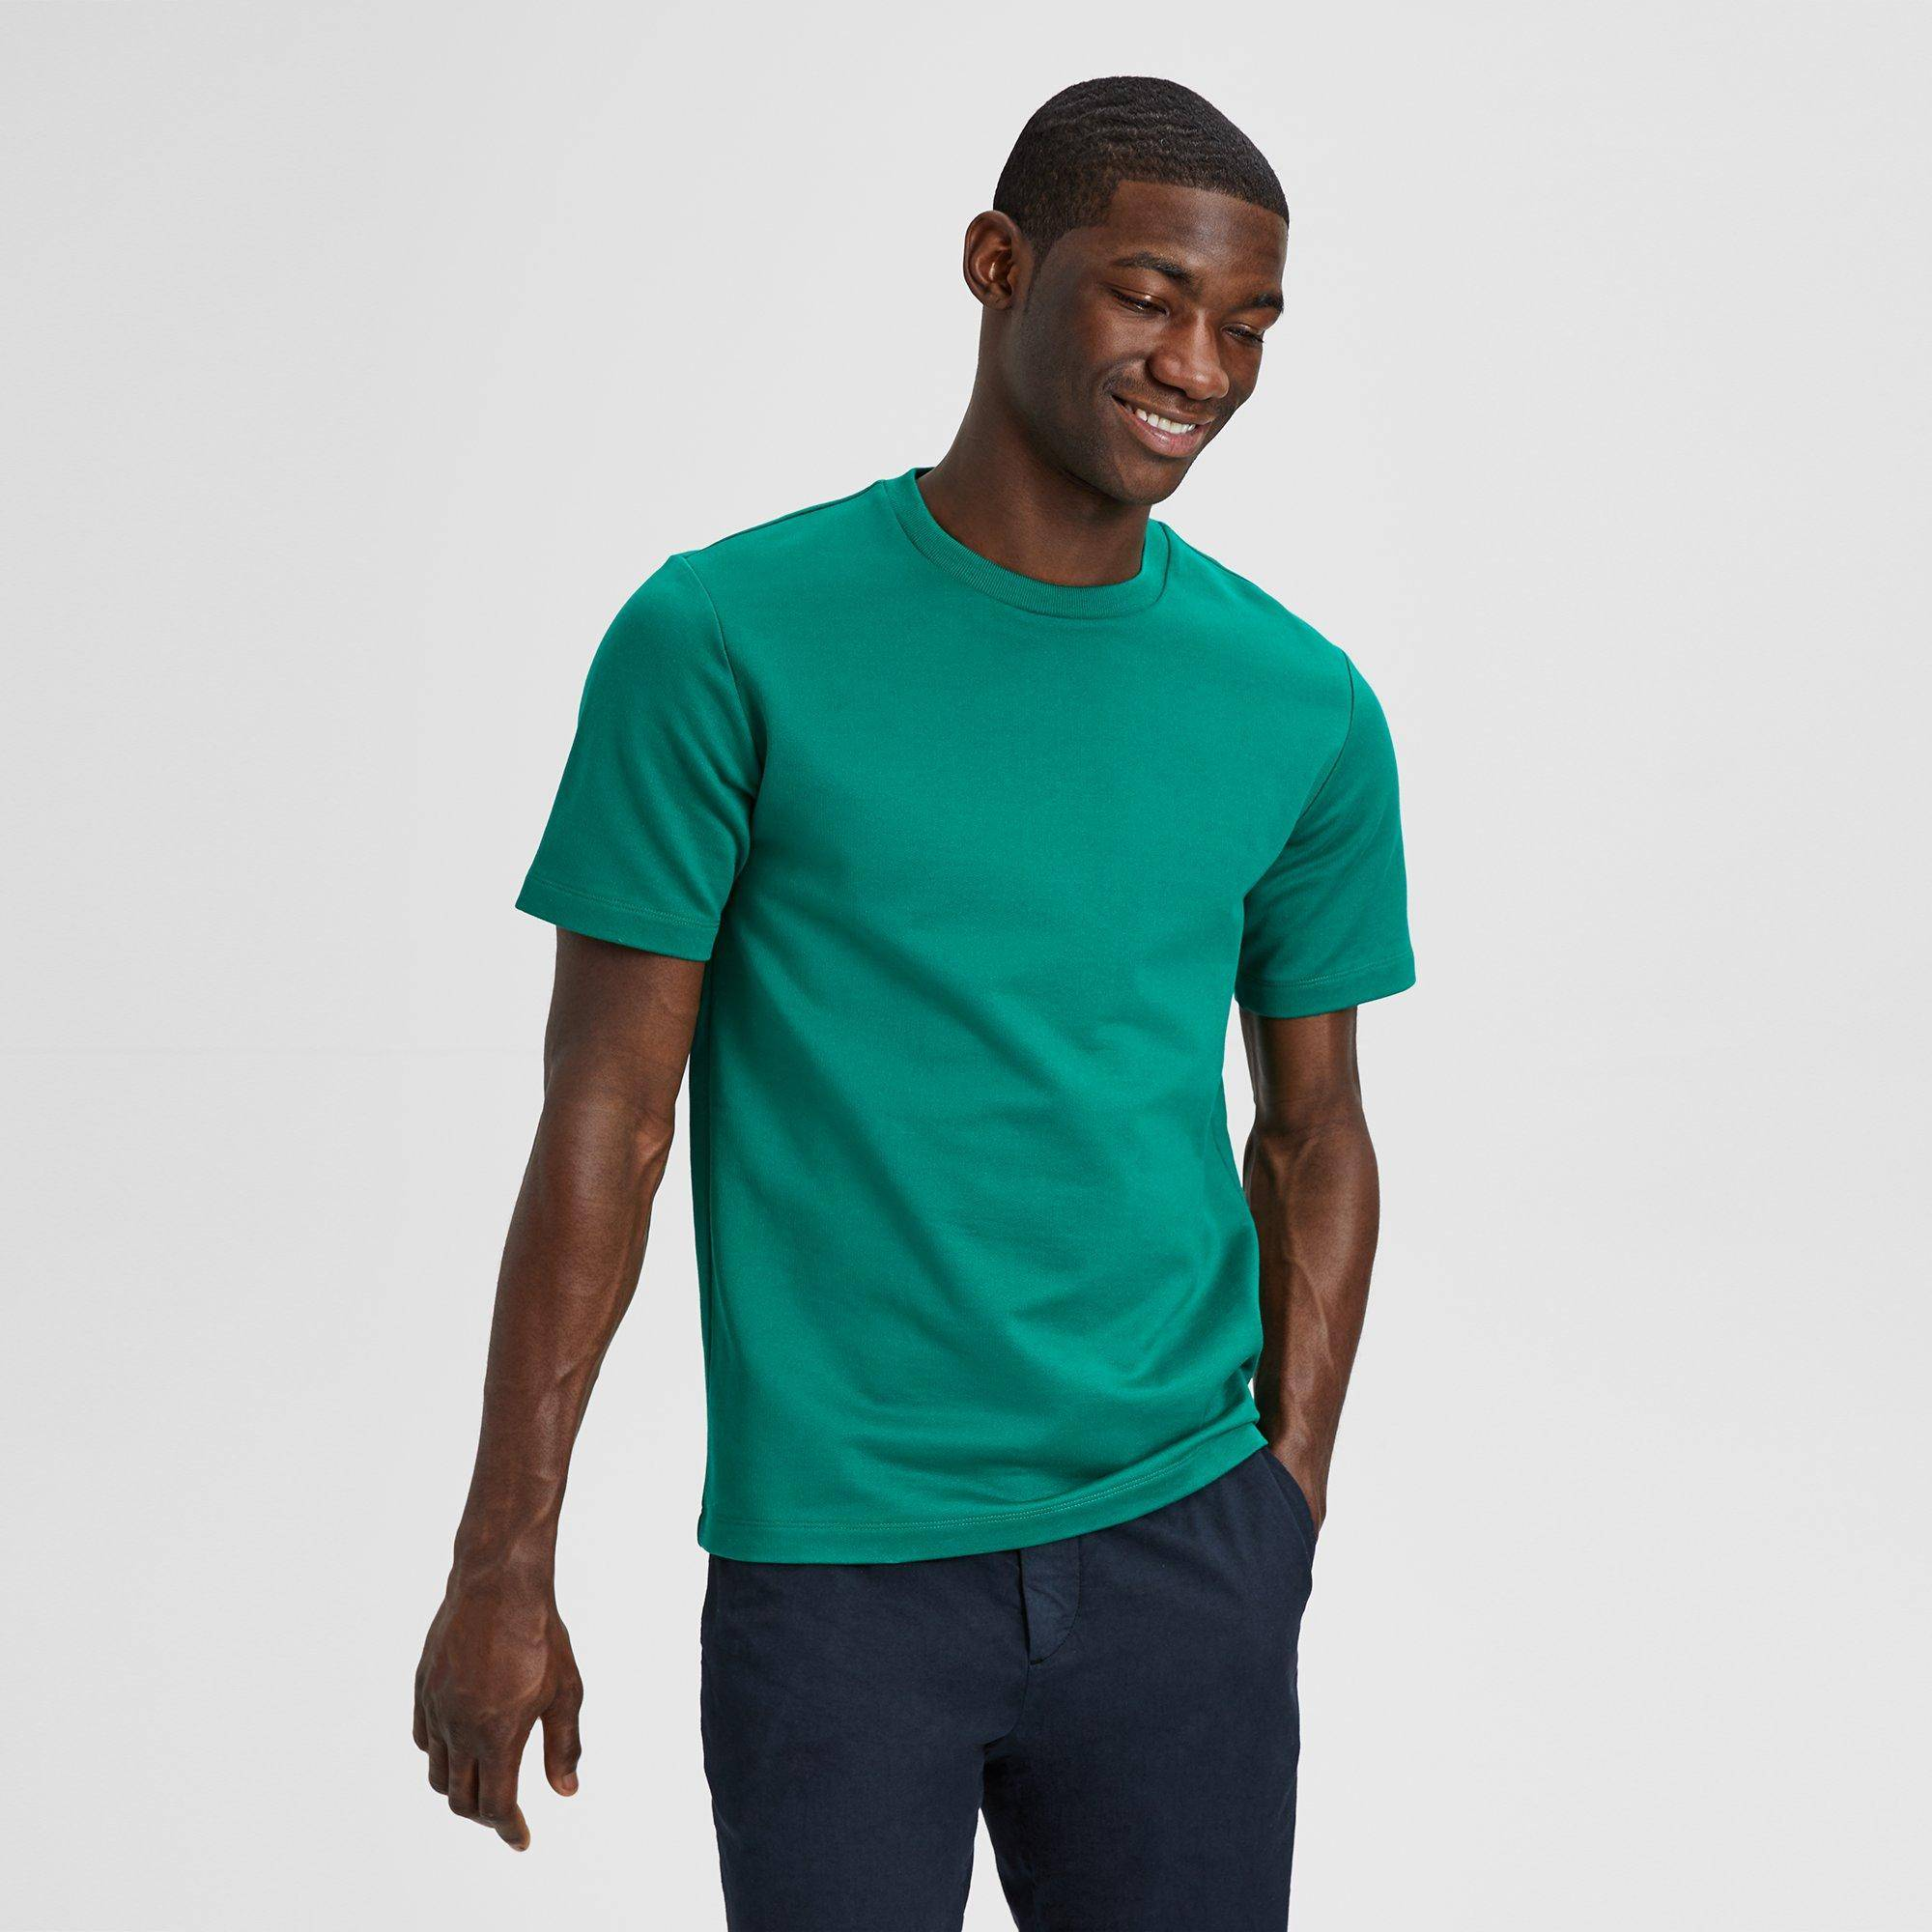 Theory Compact Cotton Terry Structure Tee  - PALM - male - Size: Extra Large